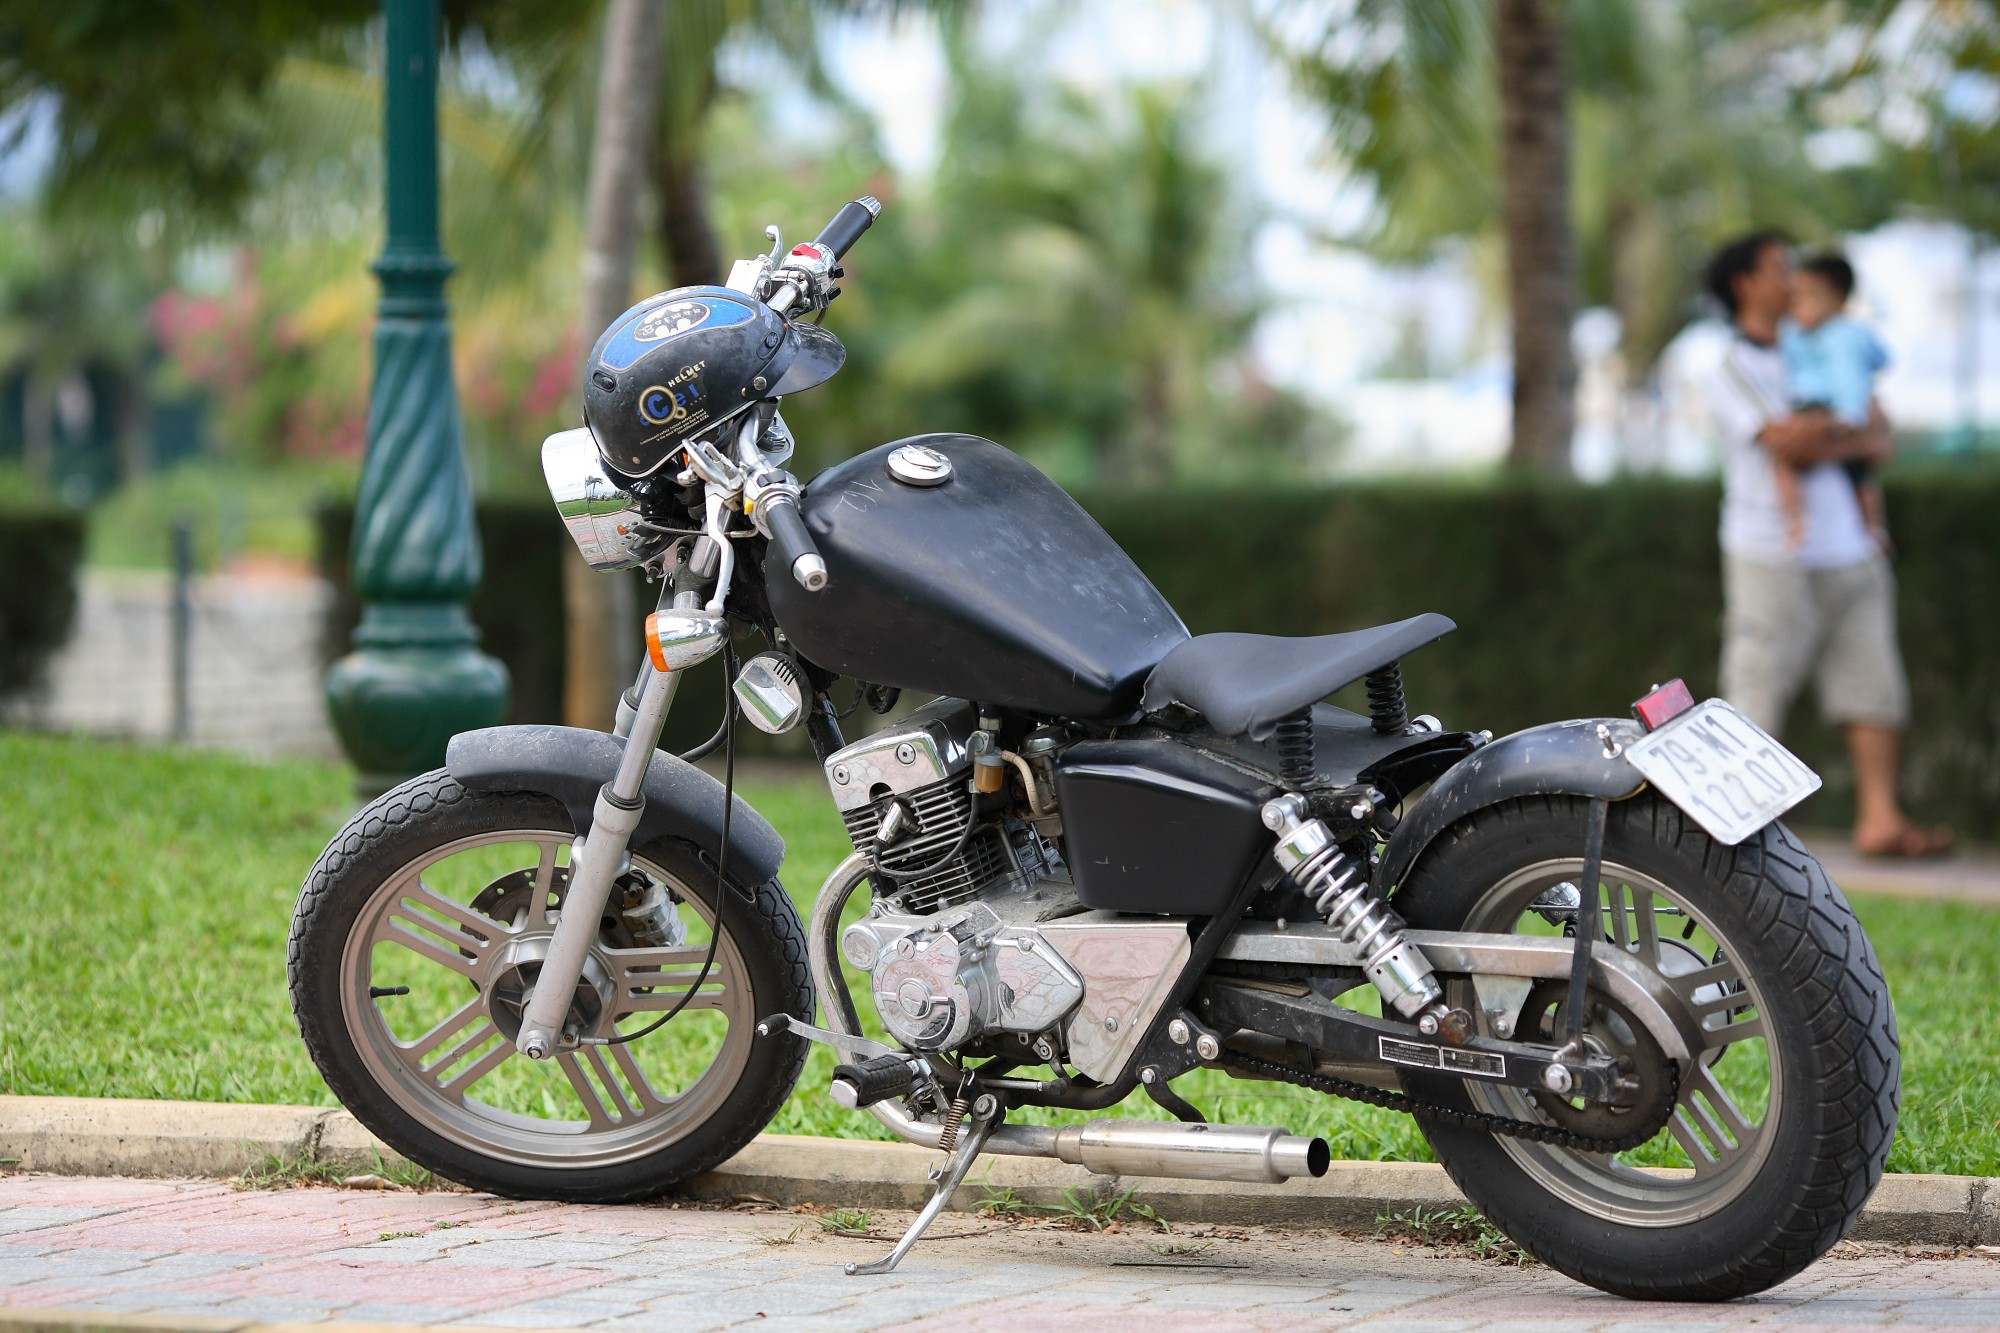 Black motorcycle propped up on kickstand sitting on the curb of the road